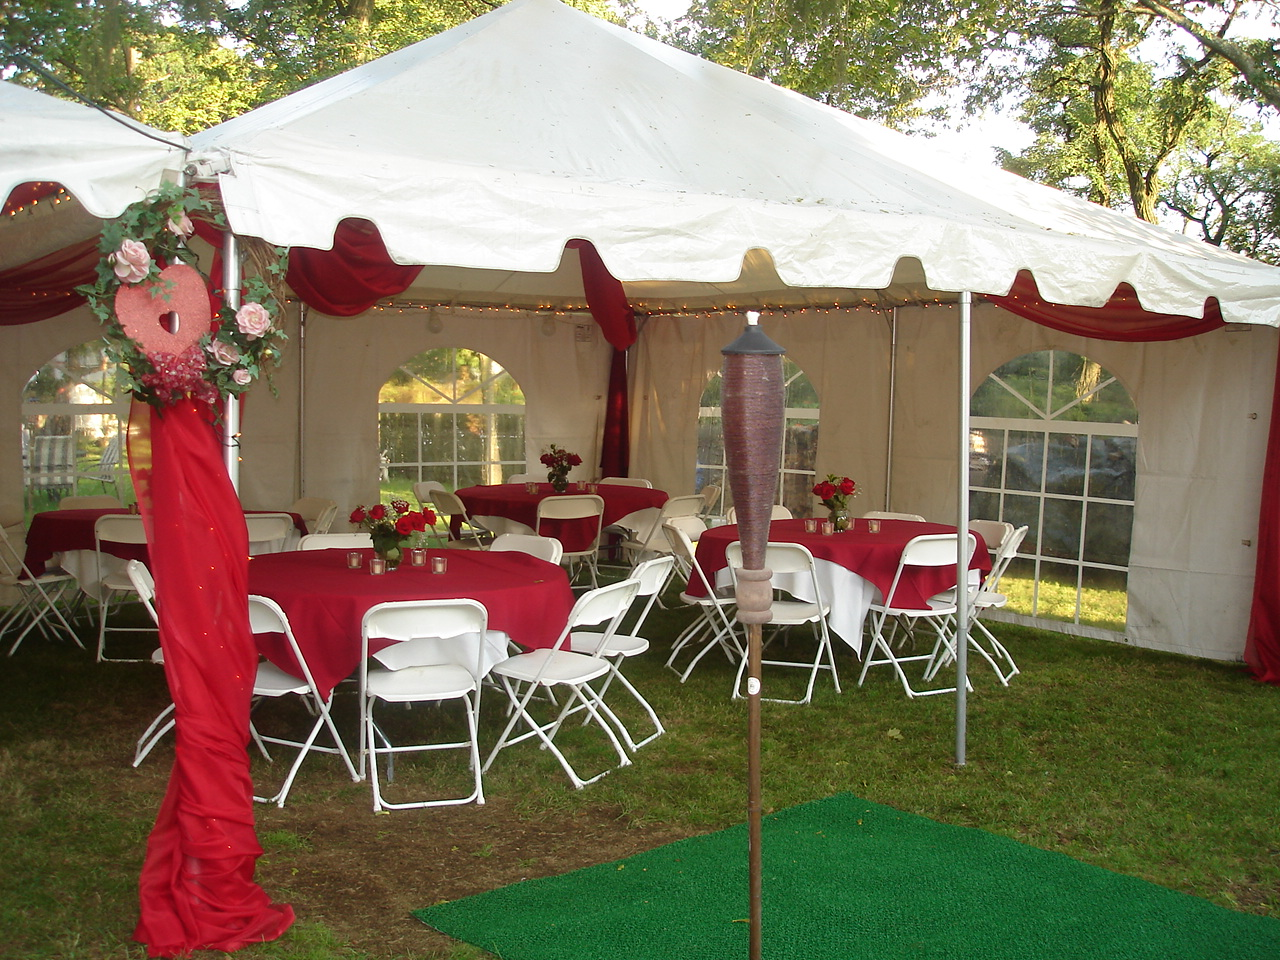 Birthday Party Tent Rentals further Pictures From A Party Tent Hired ...